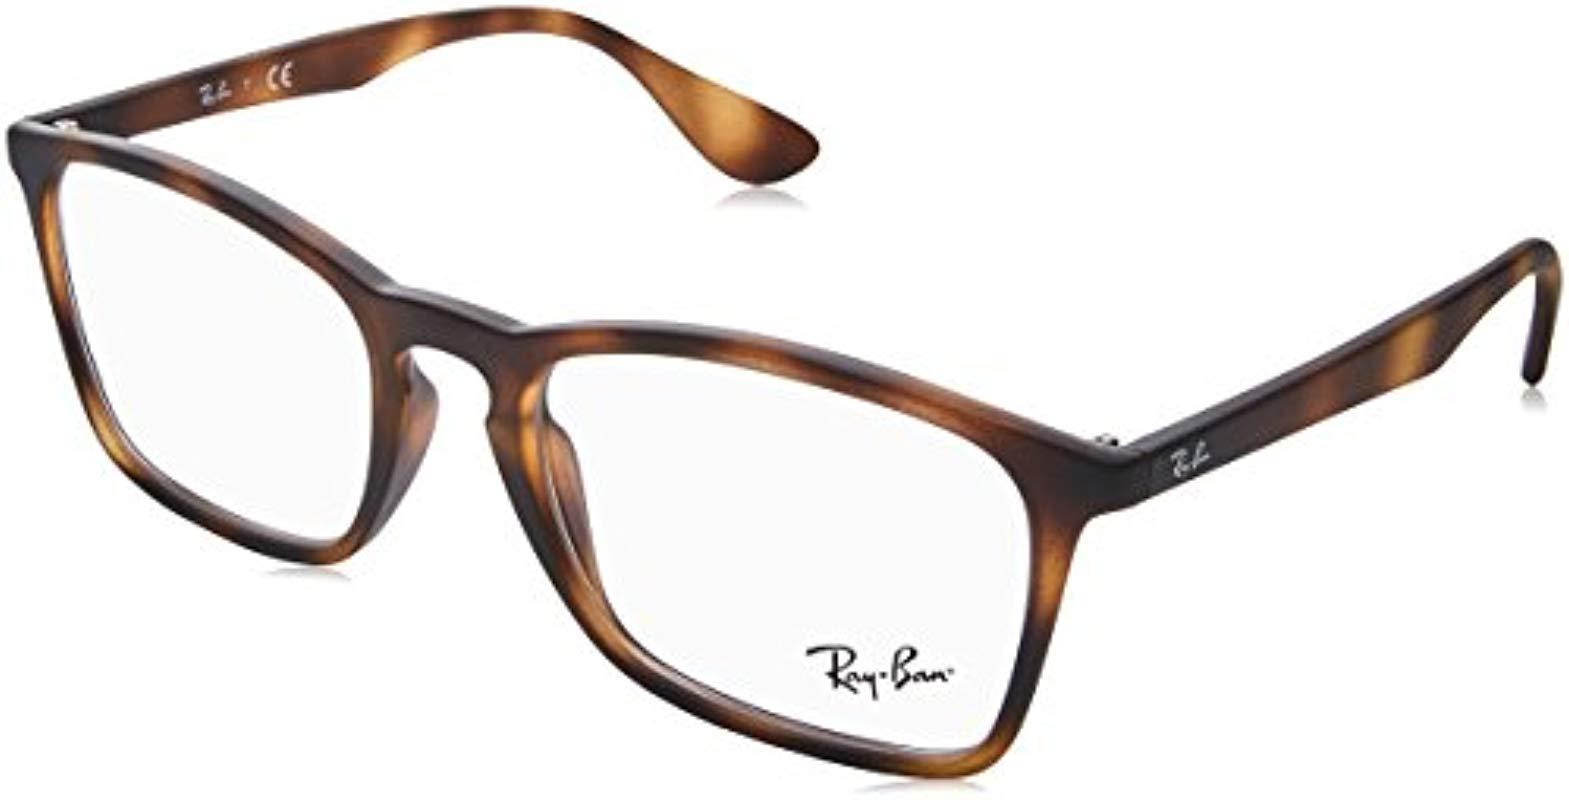 5d15d80c972 Ray-Ban Optical Frames Mod. 7045 536553 Negro